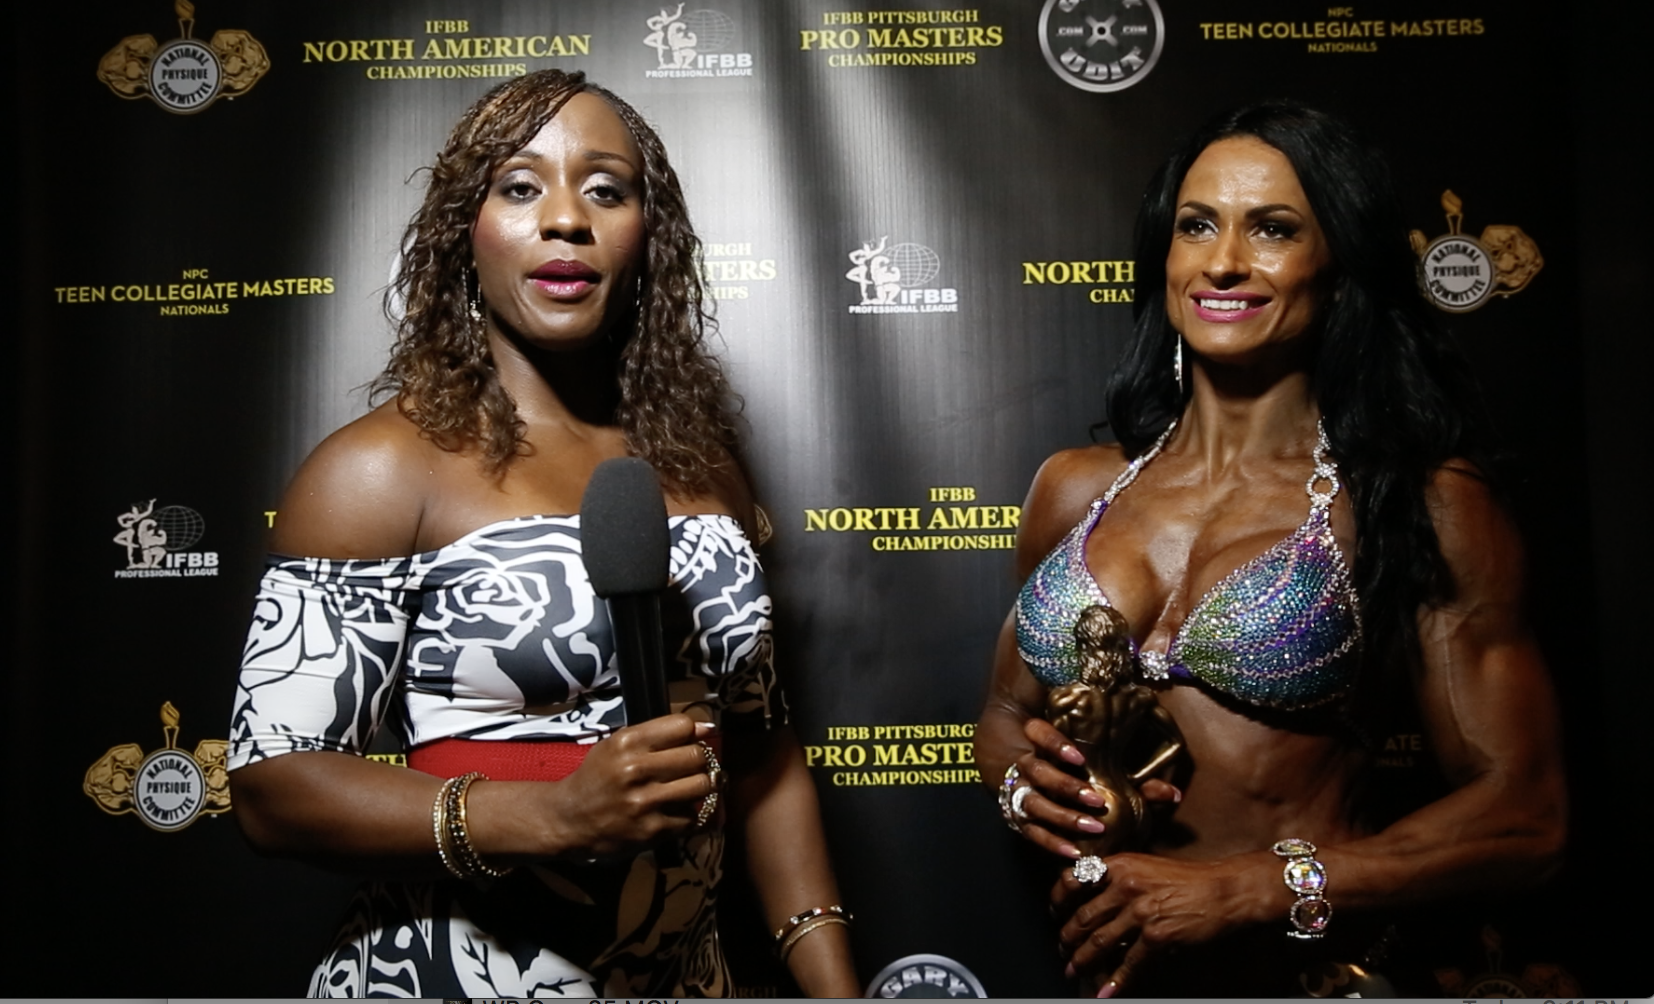 2017 NPC Teen, Collegiate & Masters Nationals Women's Physique Winner Interviews: 4 Videos